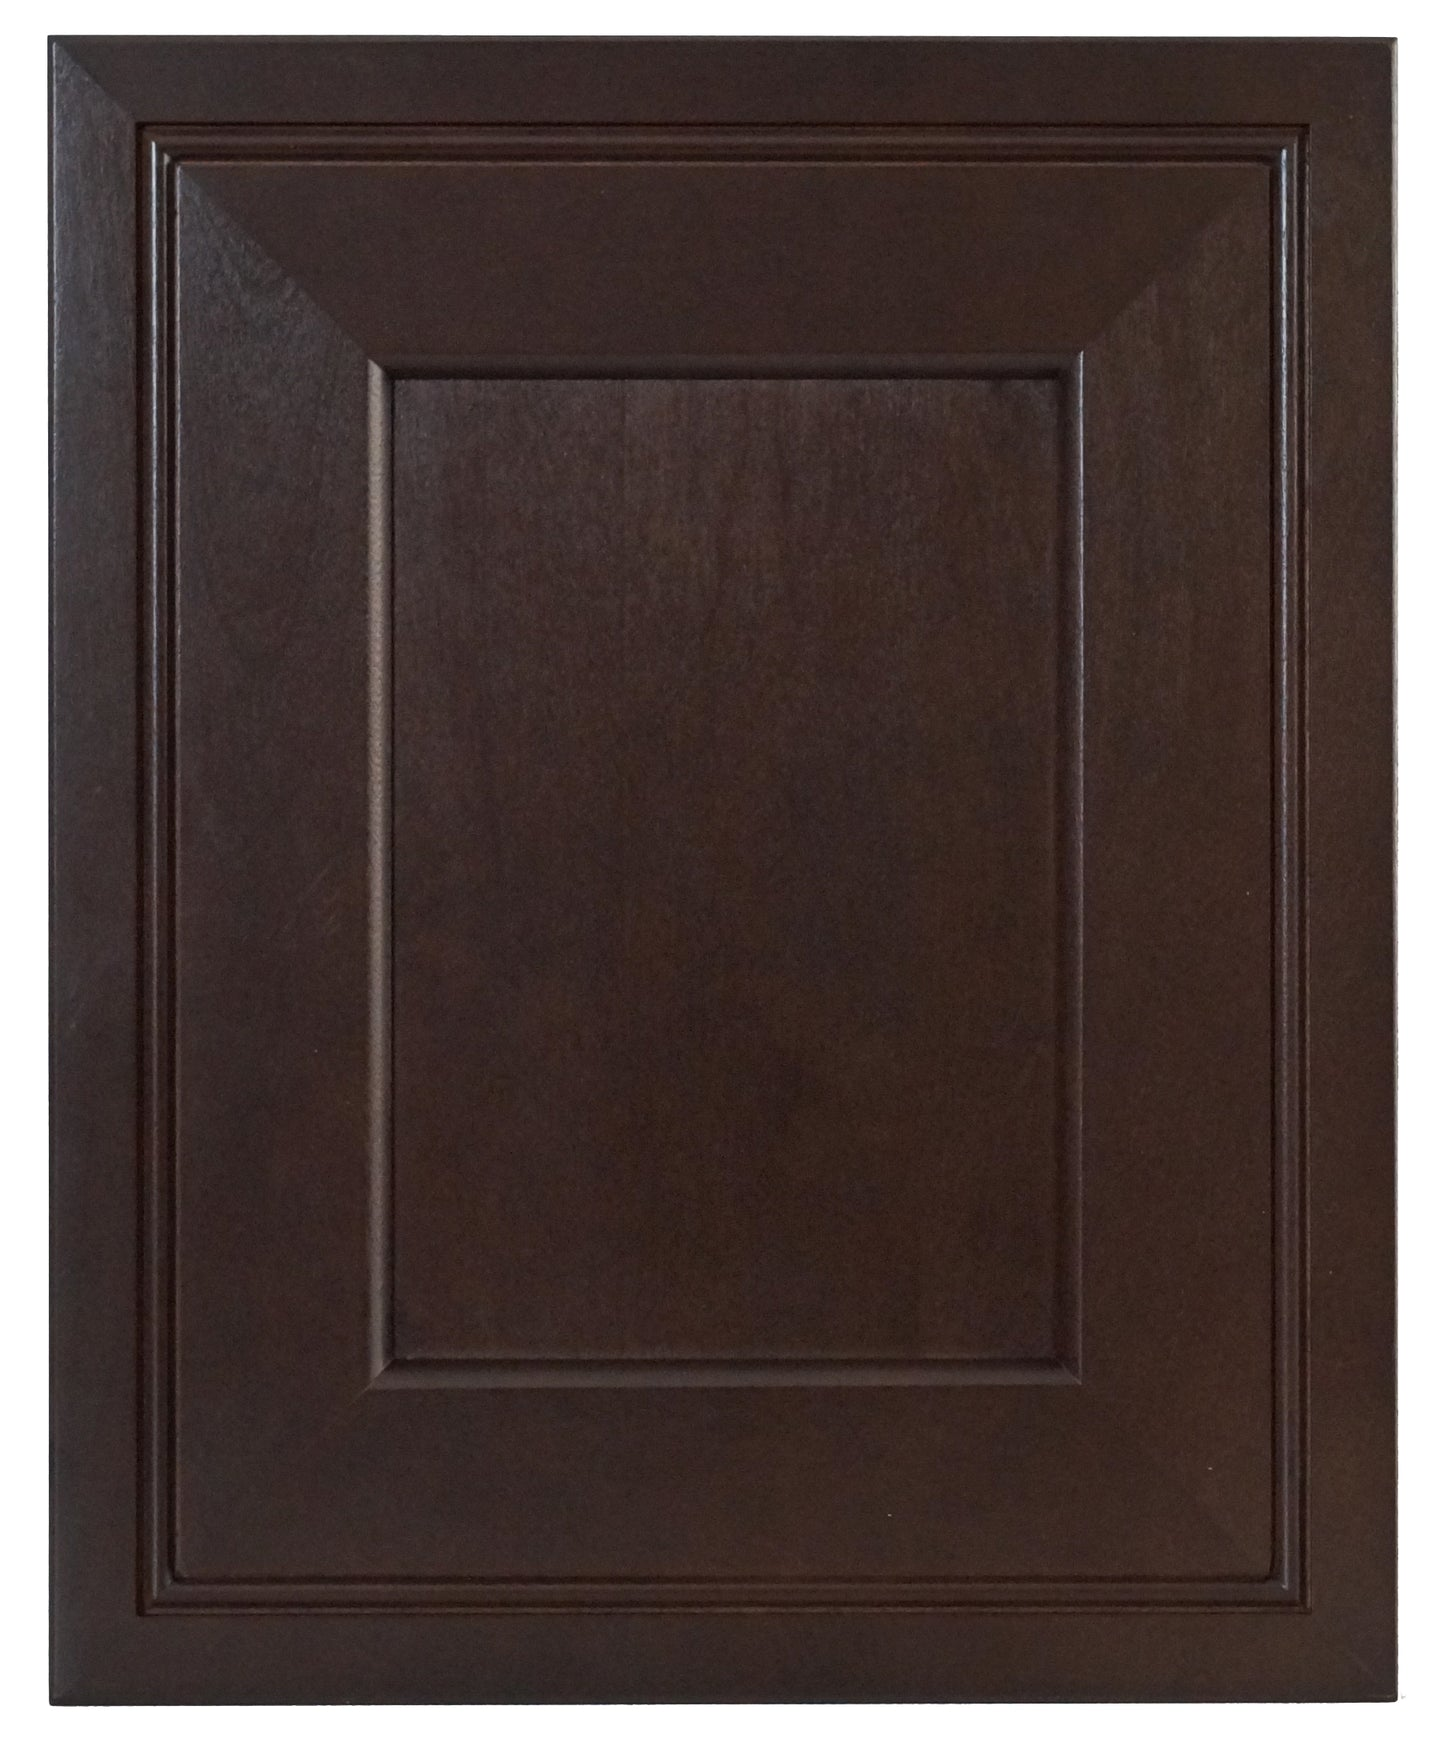 Espresso Contemporary Raised Panel Door - Quality Kitchens For Less